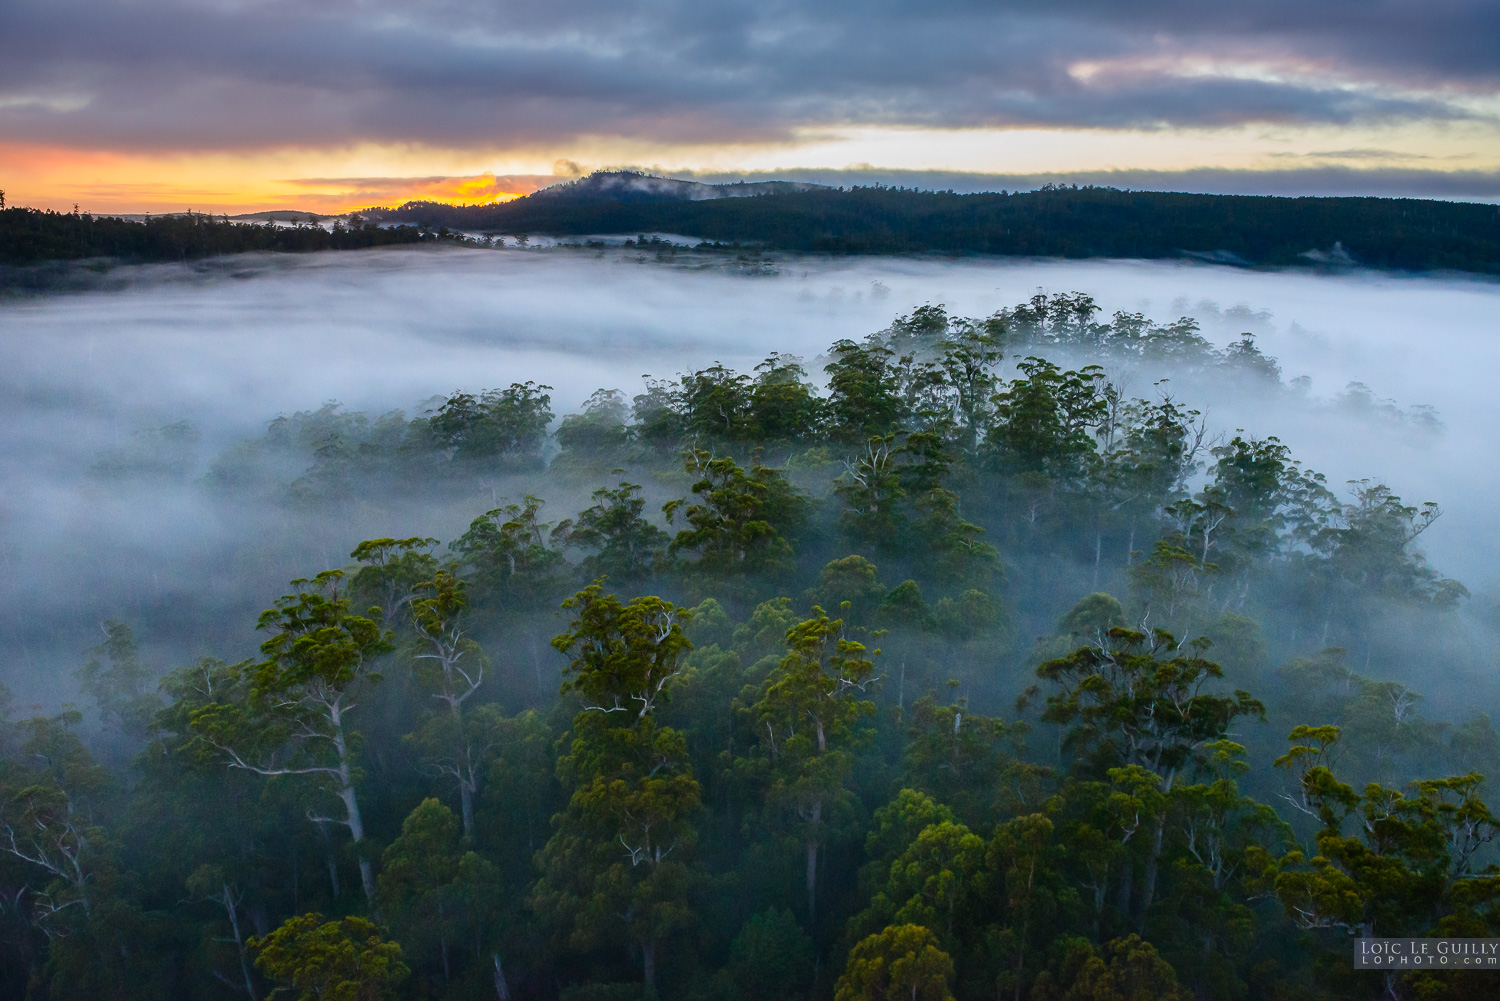 Morning fog over the Tarkine